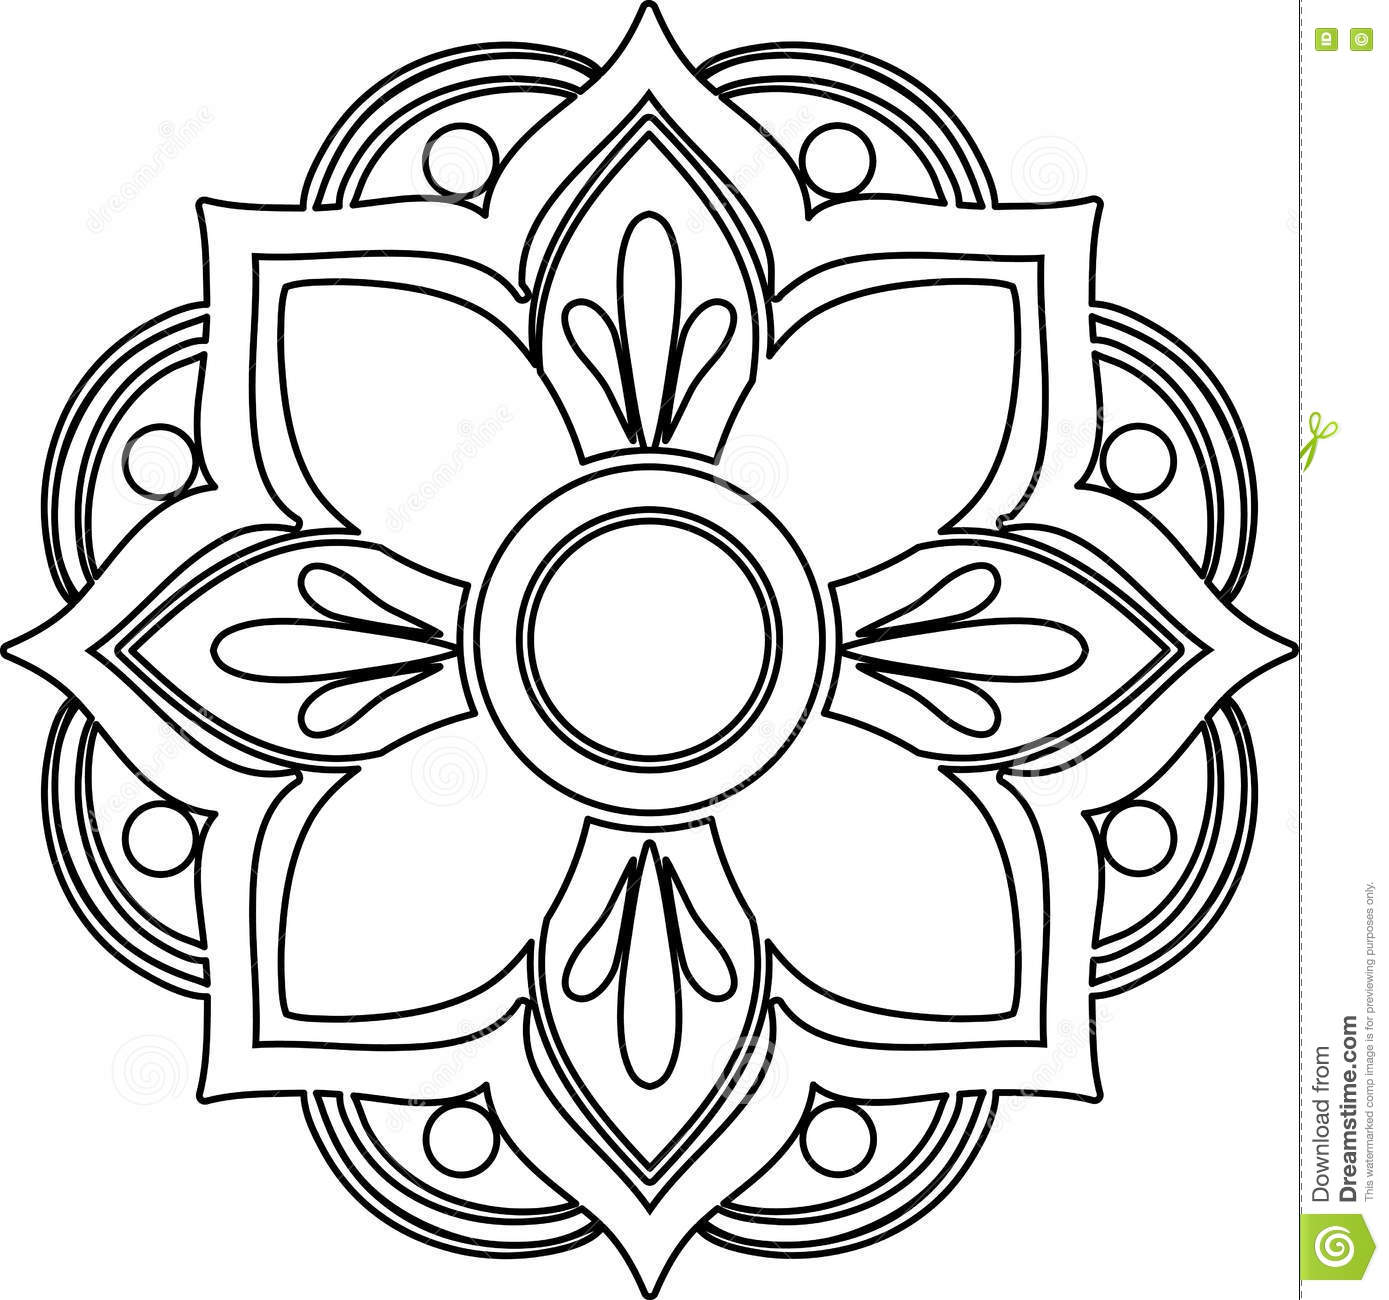 Drawing Vector Lines In Photo : Mandala line art cartoon vector cartoondealer